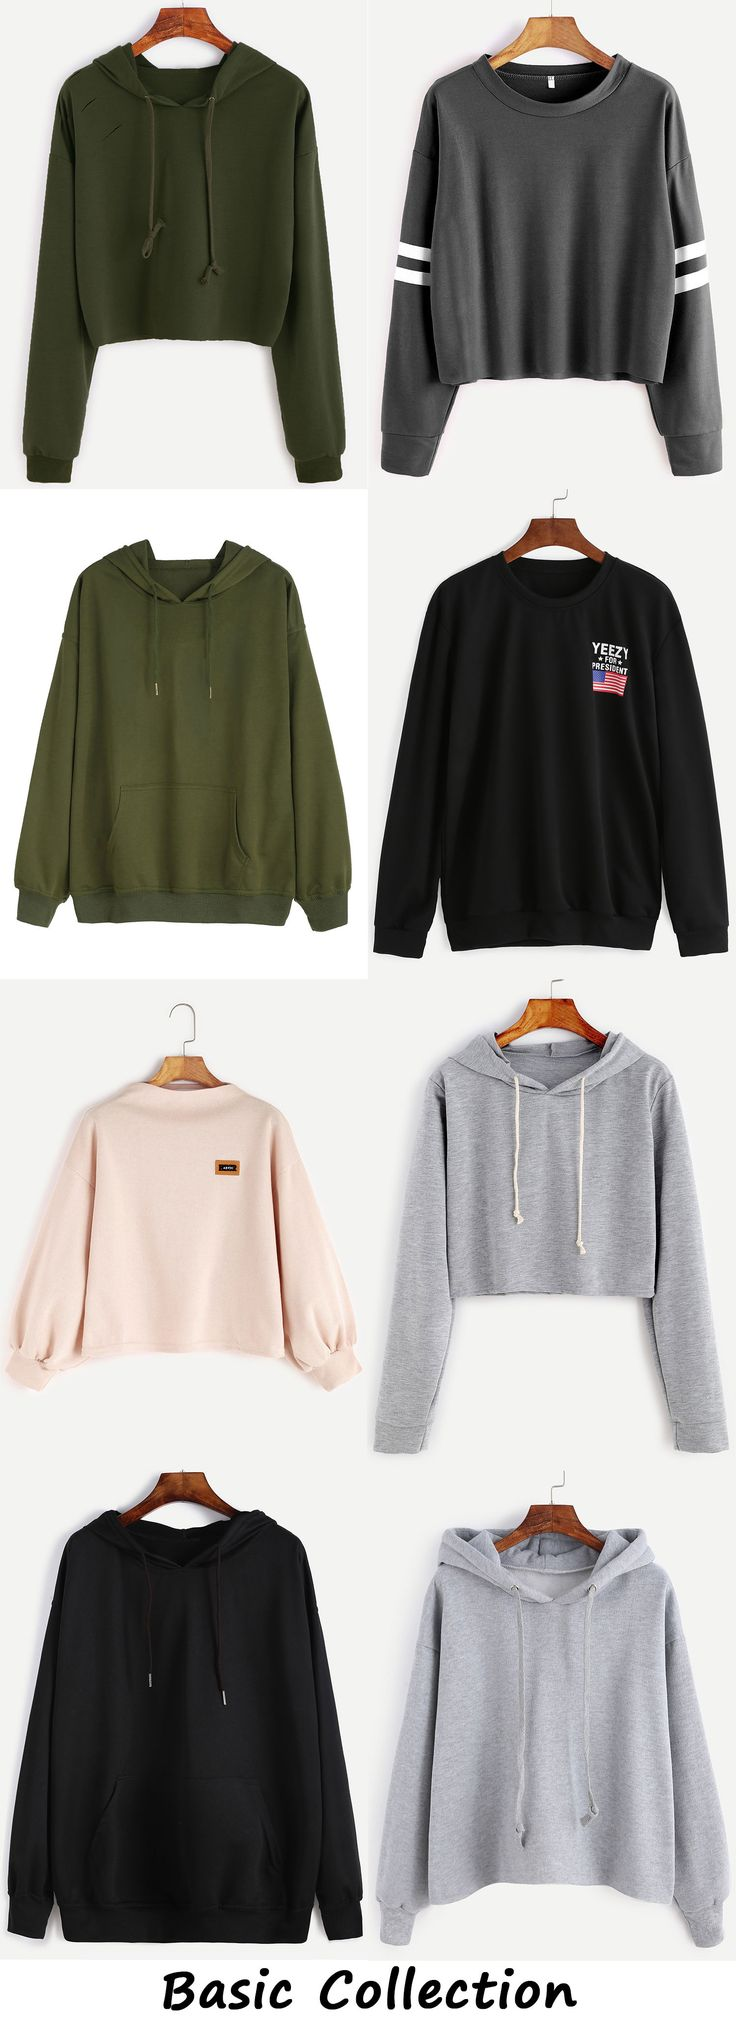 basic collection 2017 - romwe.com